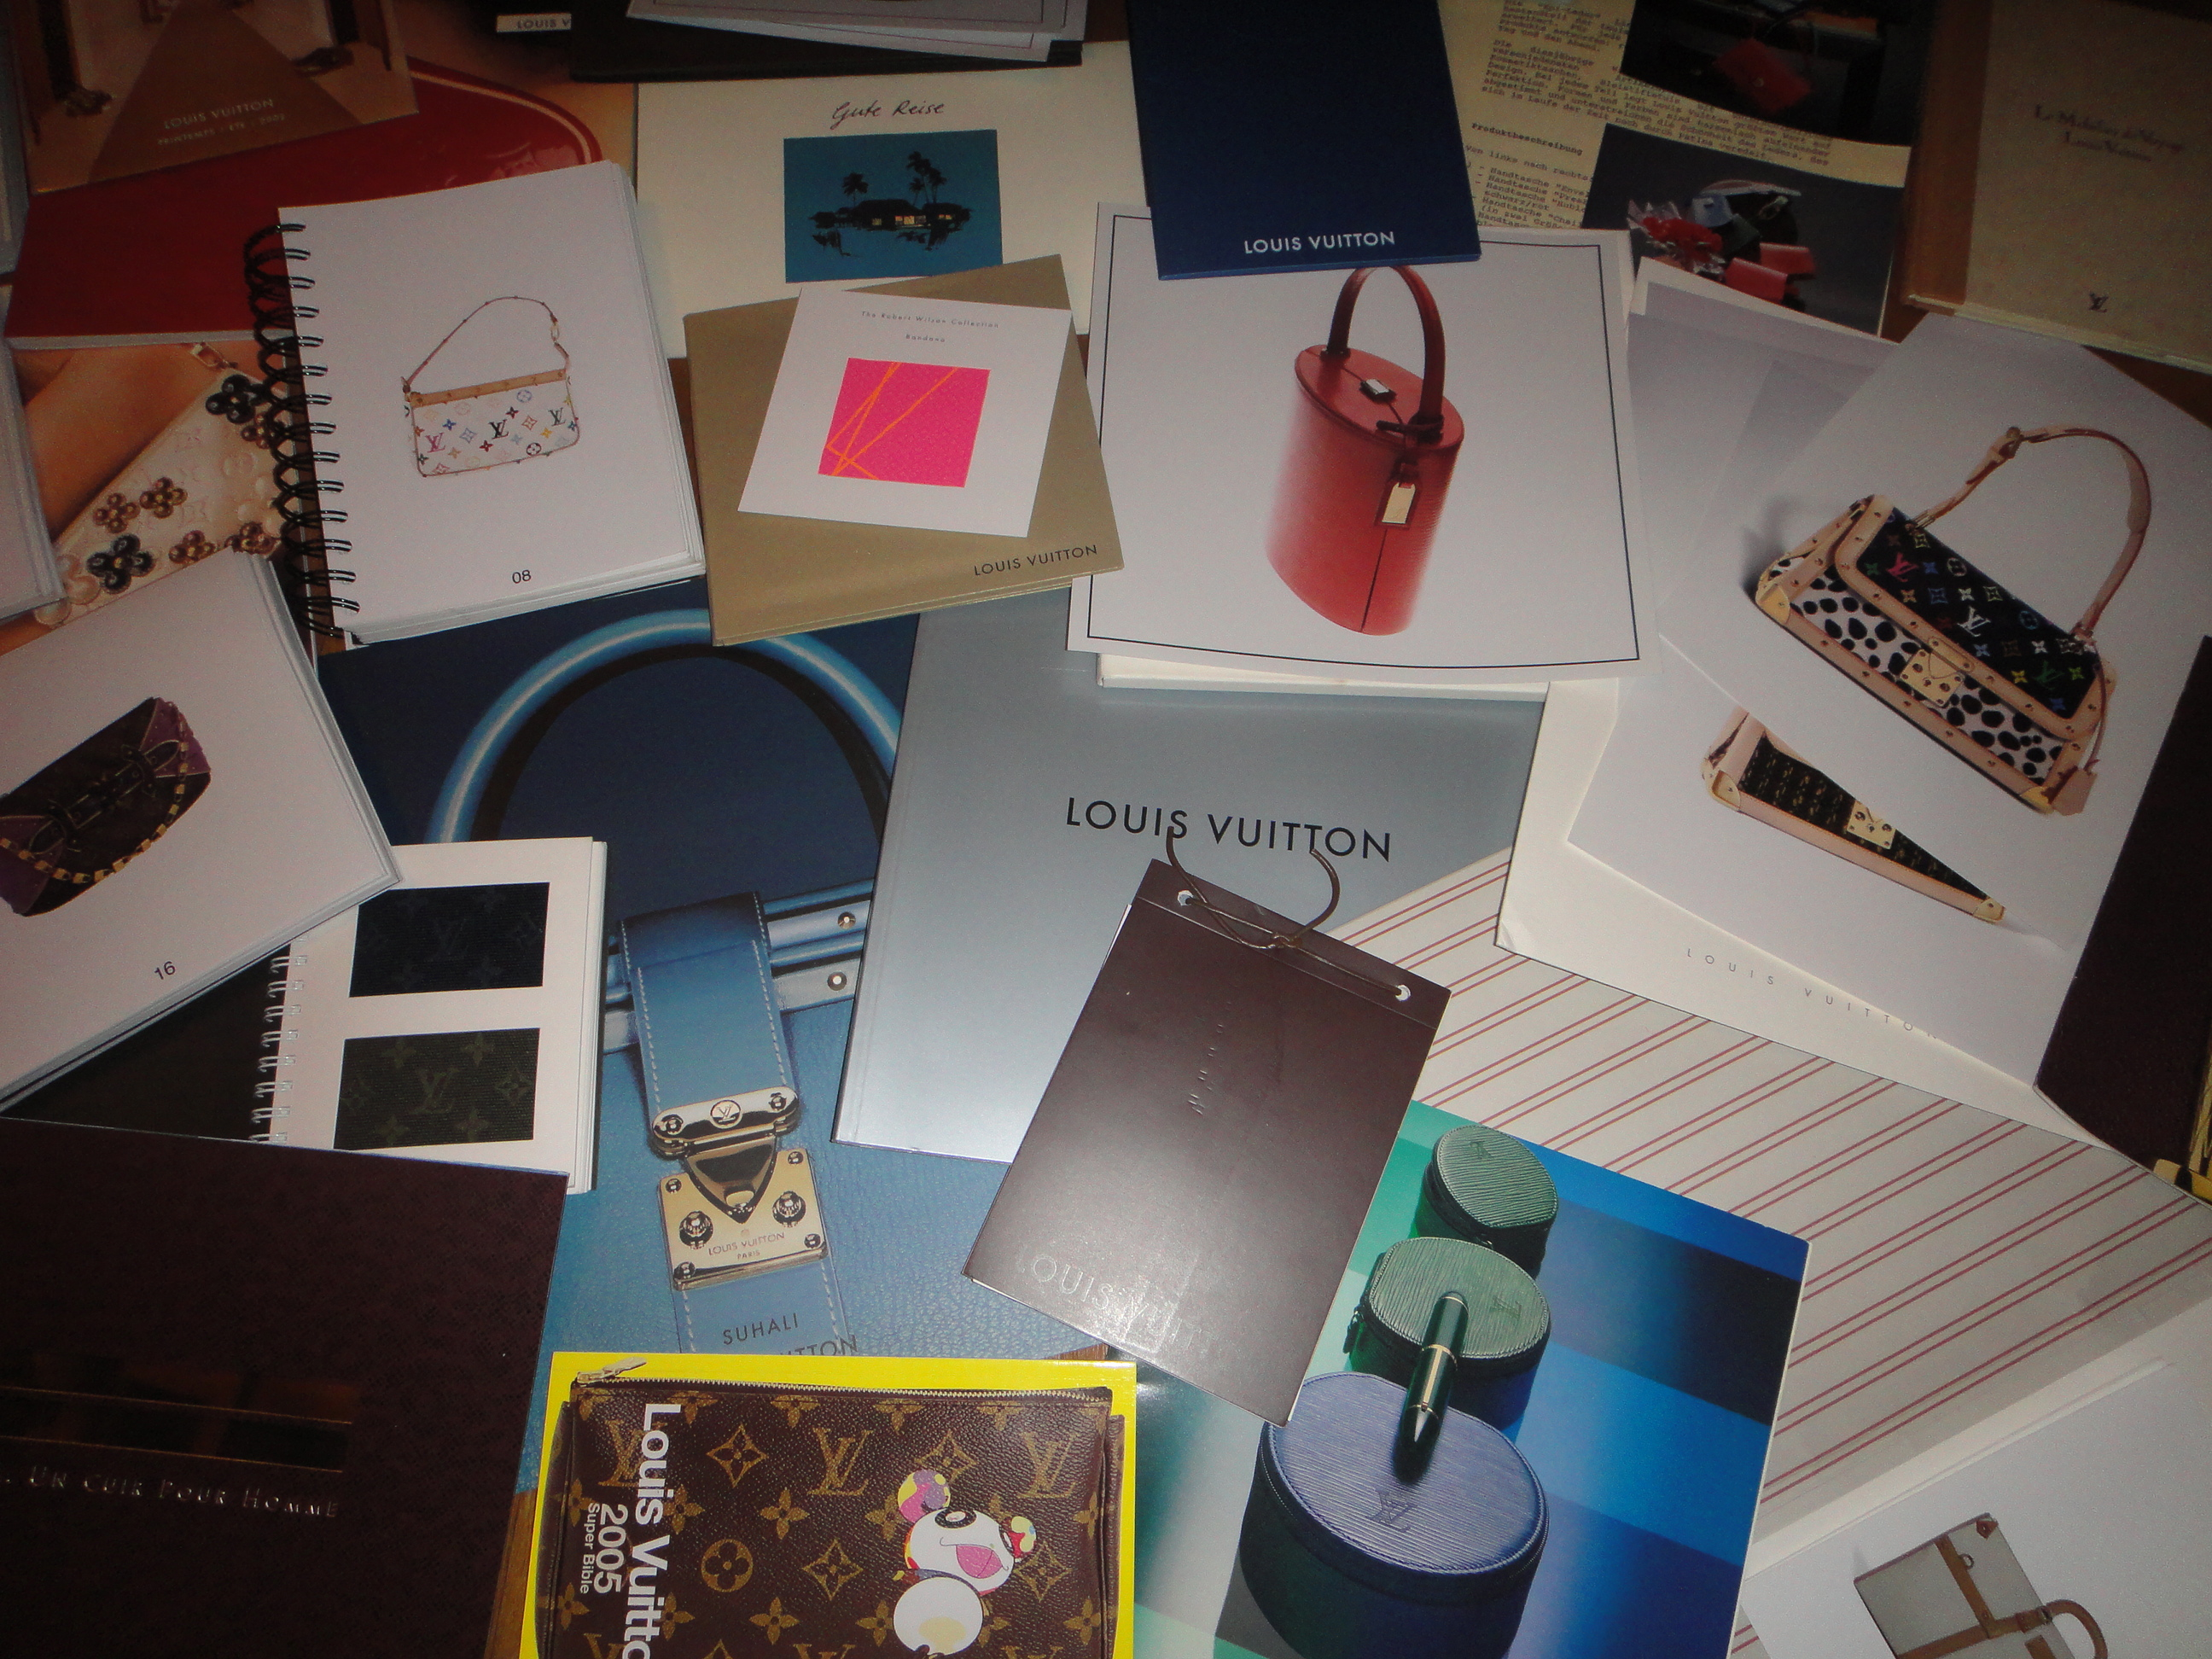 selection of Louis Vuitton brochures